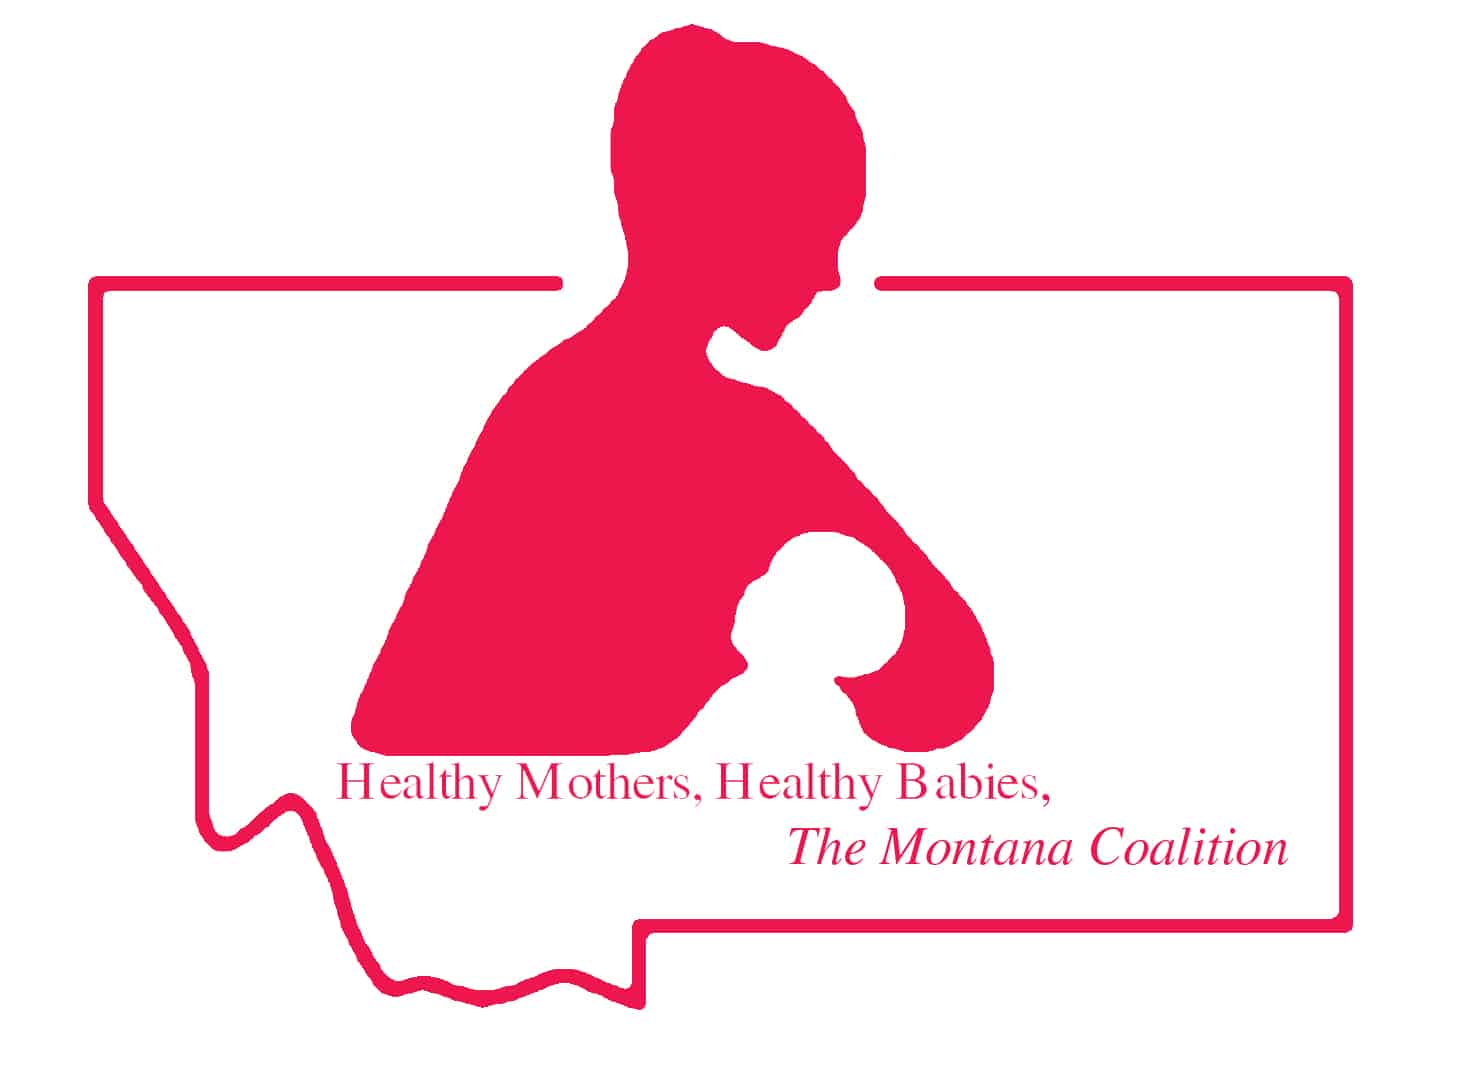 Healthy Mothers Healthy Babies: the Montana Coalition